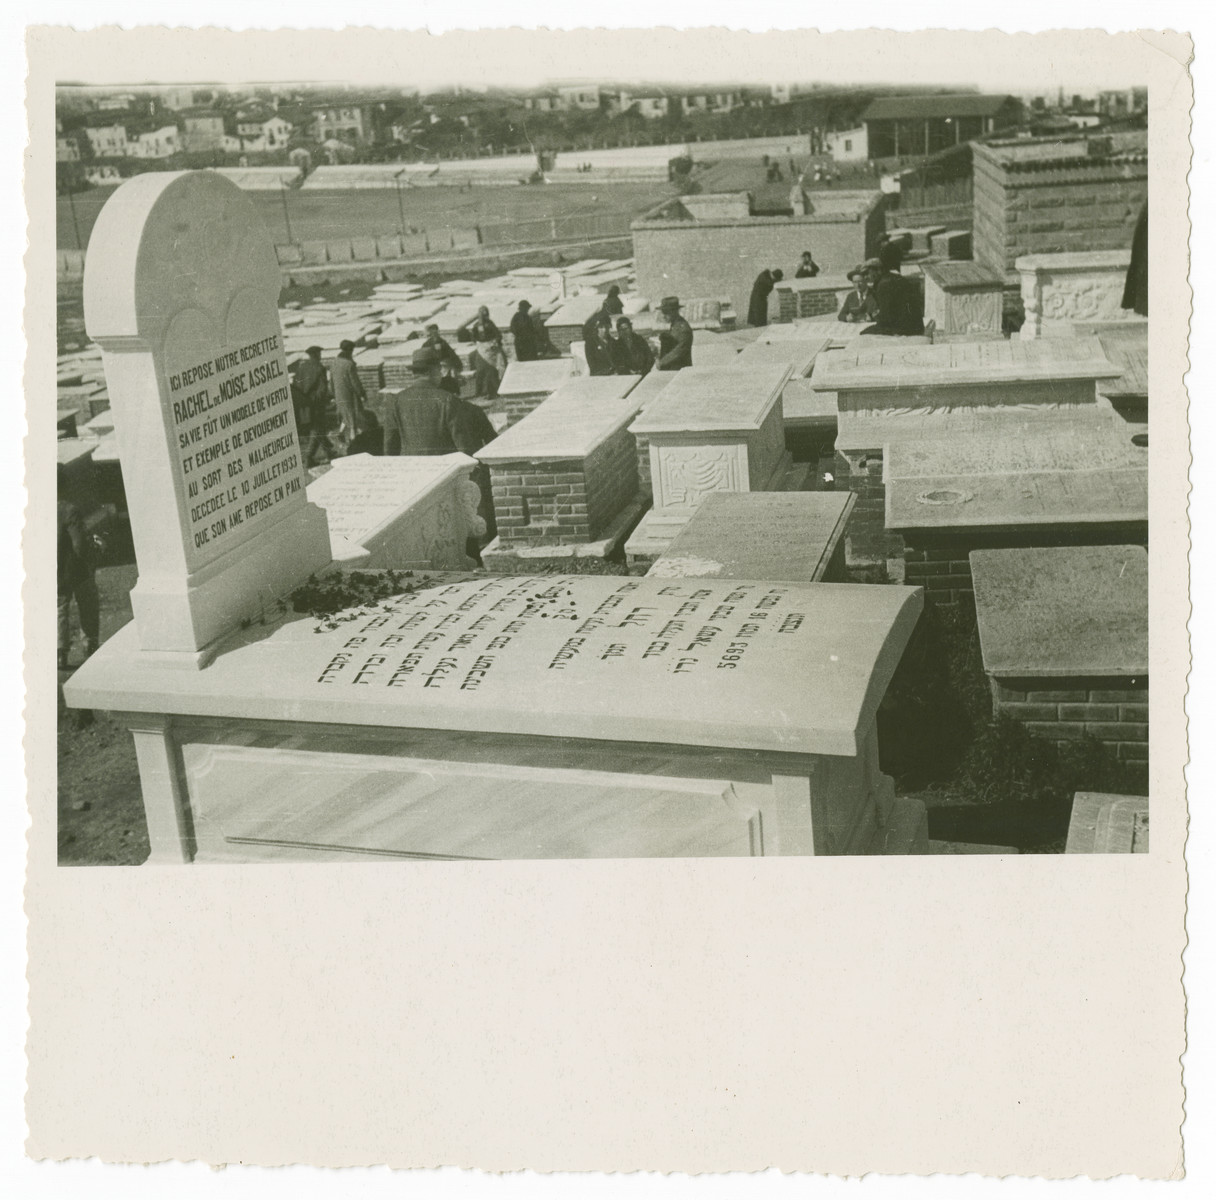 View of the Jewish cemetery in Salonika before the war.